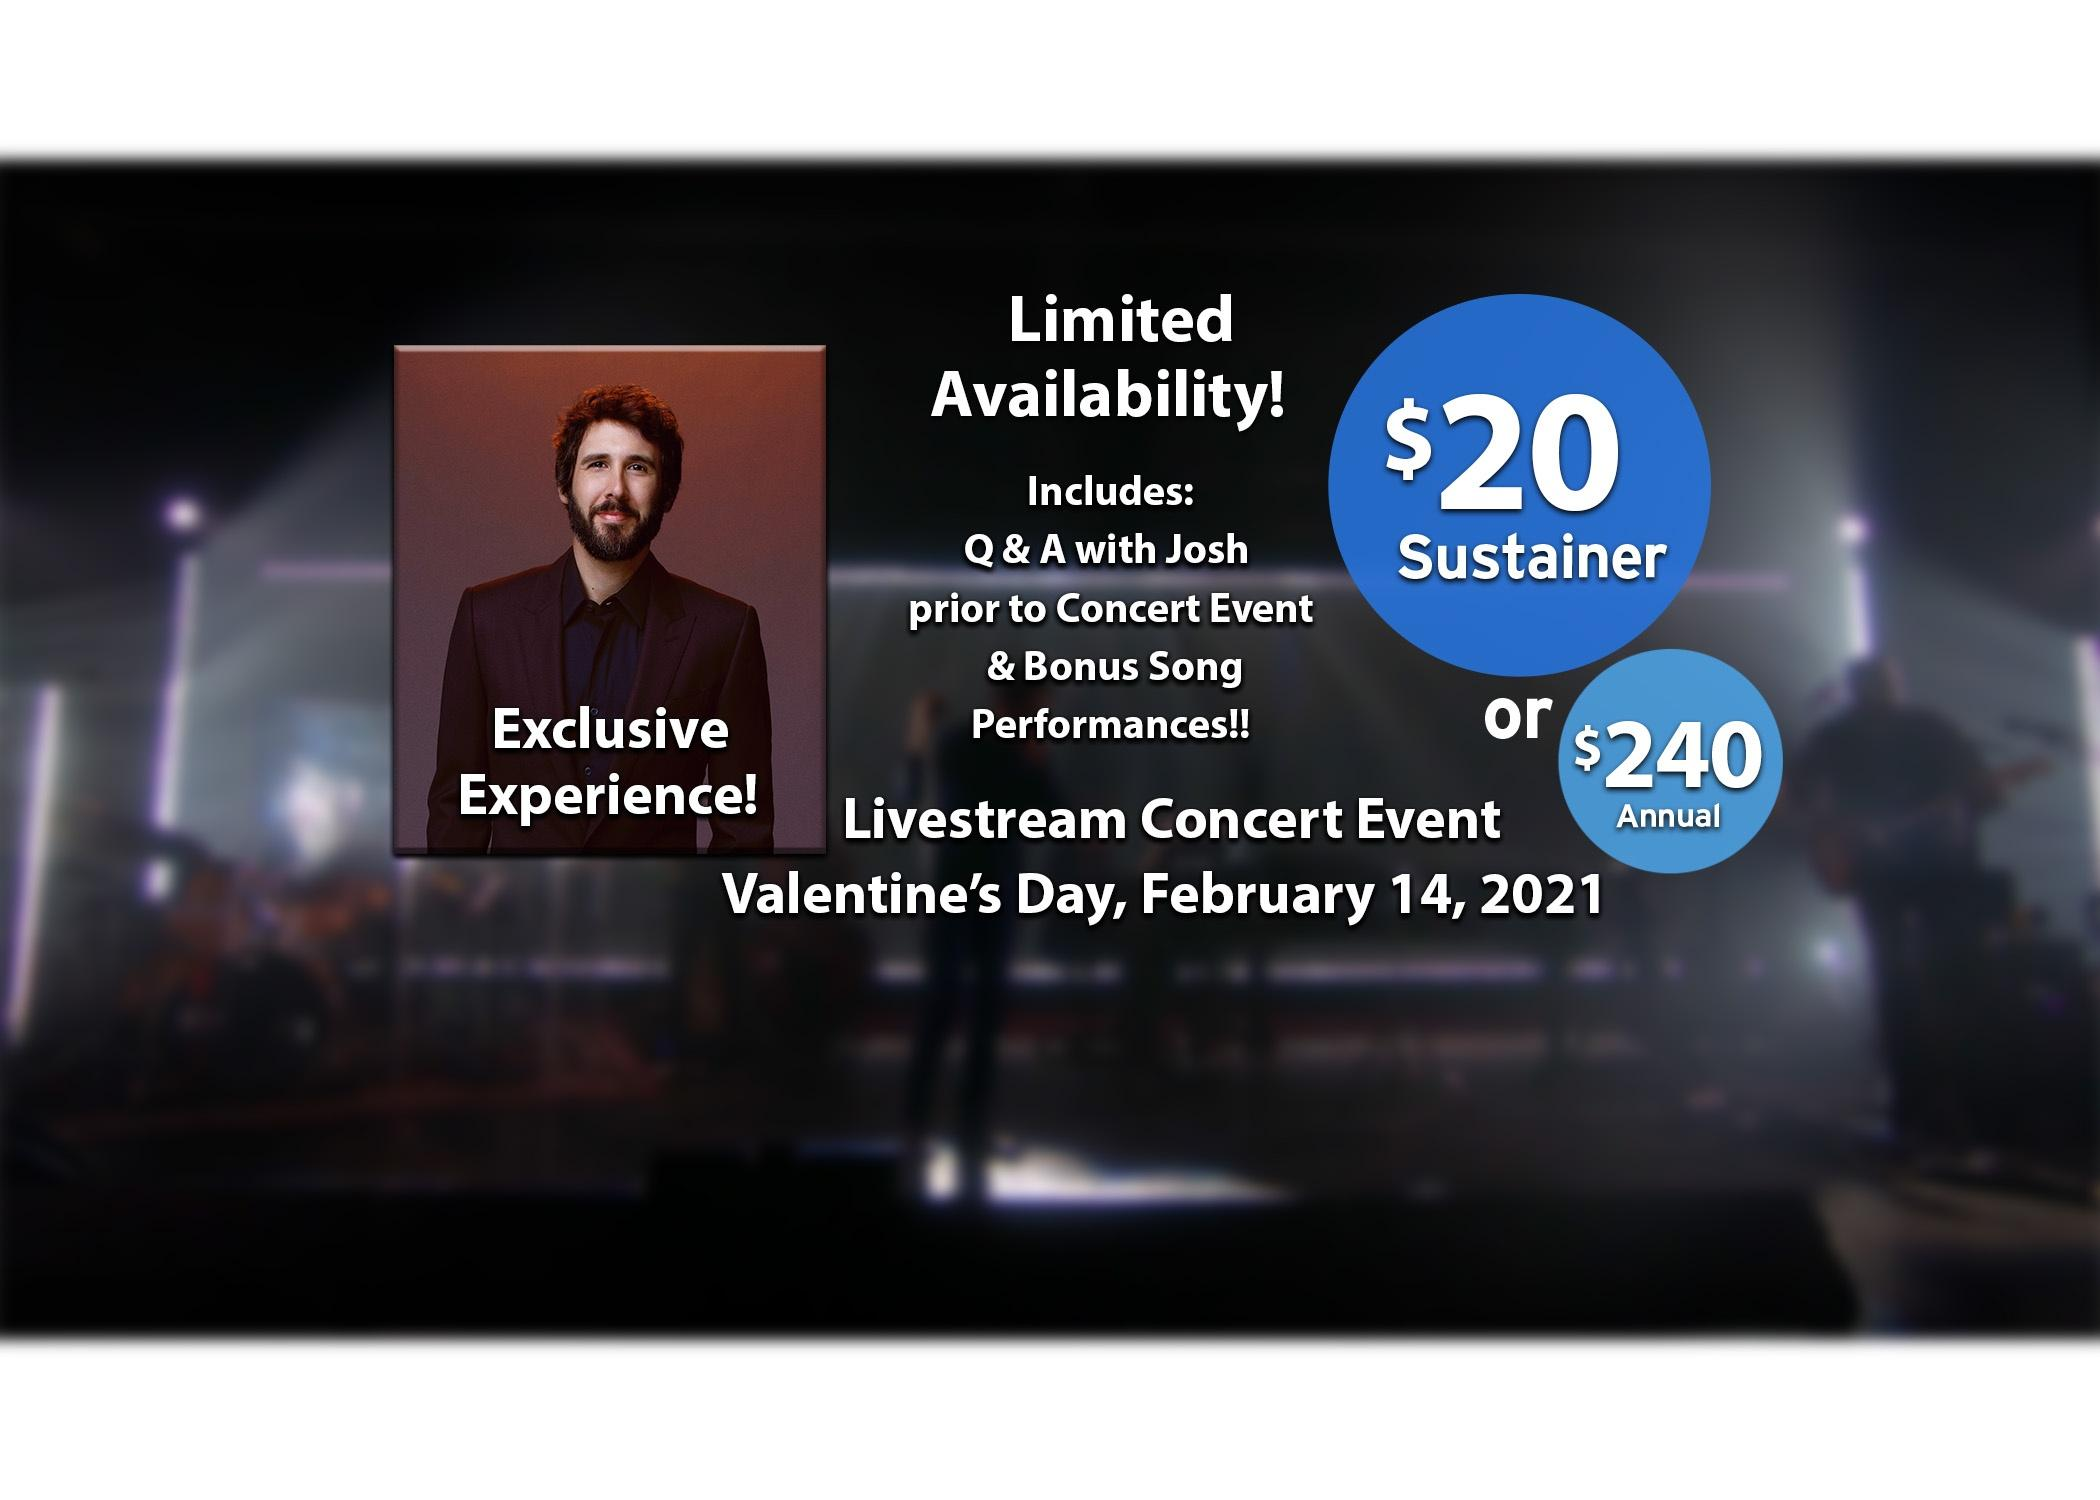 Josh Groban VIP Package, Tote bag, Harmony CD, soundcheck, livestream - Become a sustaining member $20 or $20 Annual